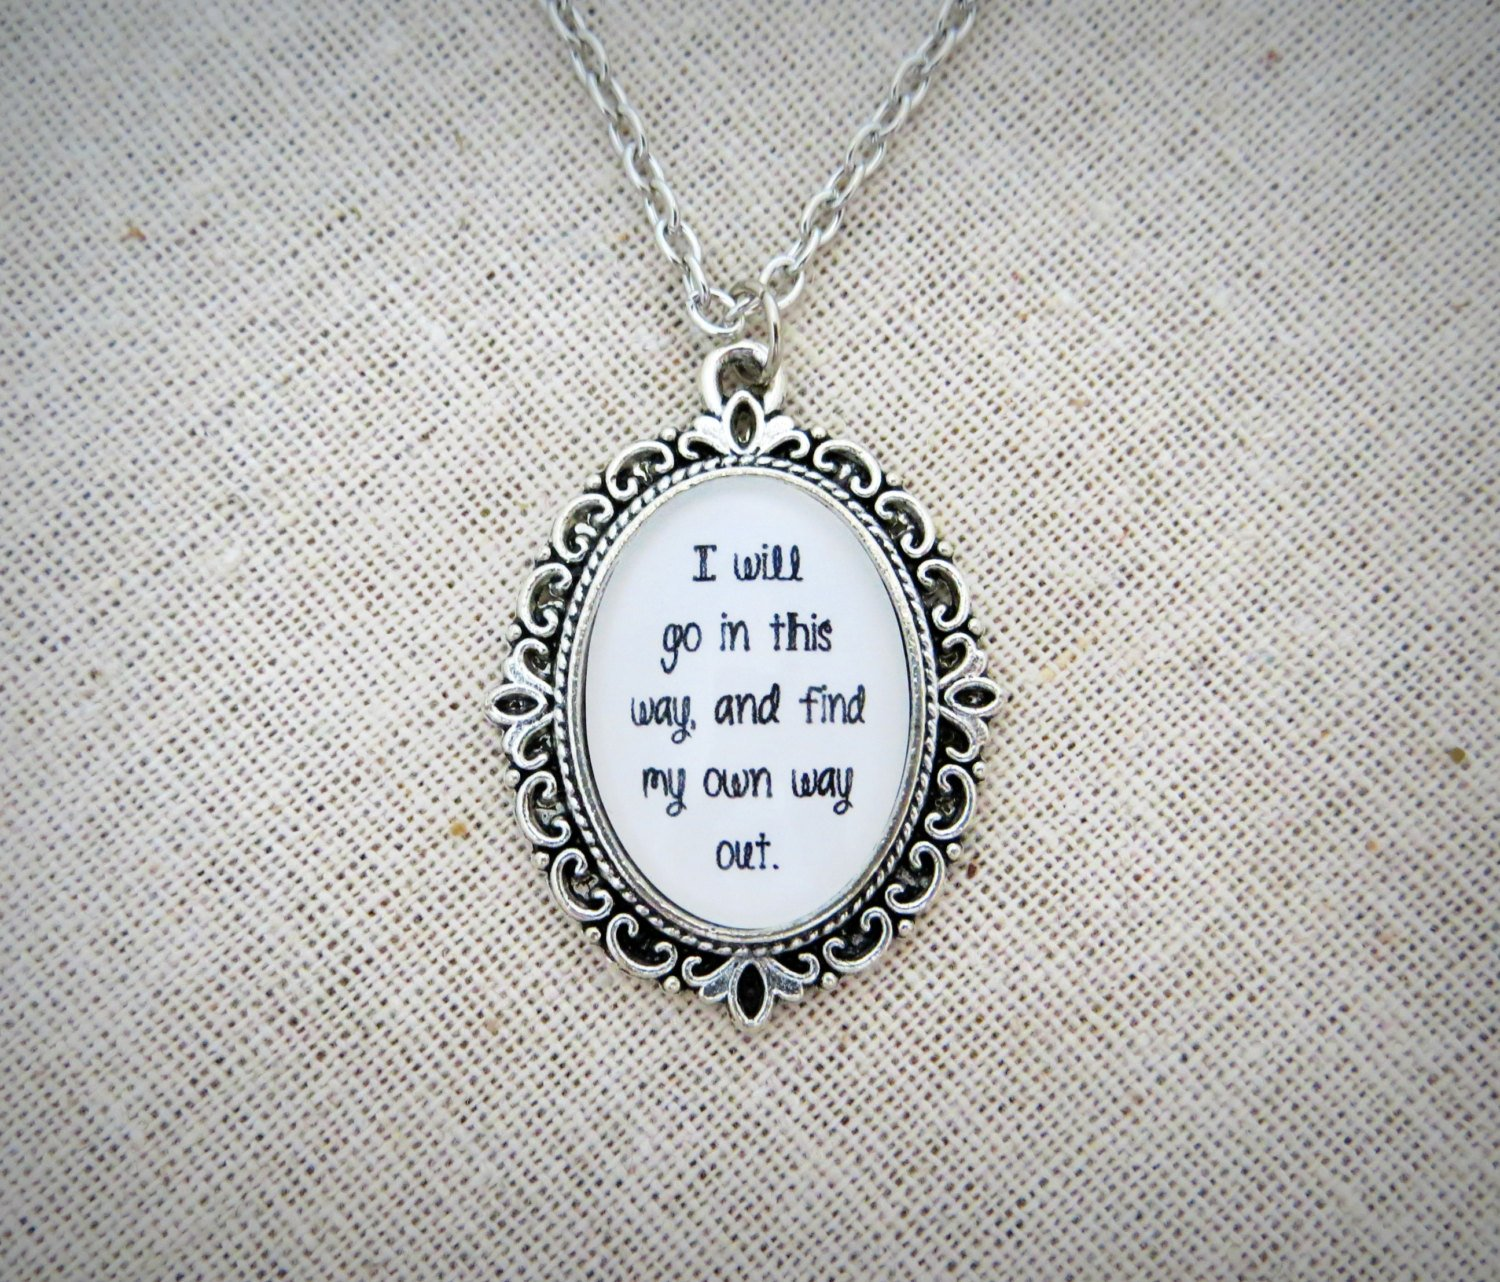 Dave Matthews Band #41 Inspired Lyrical Quote Pendant Necklace (Number 41)